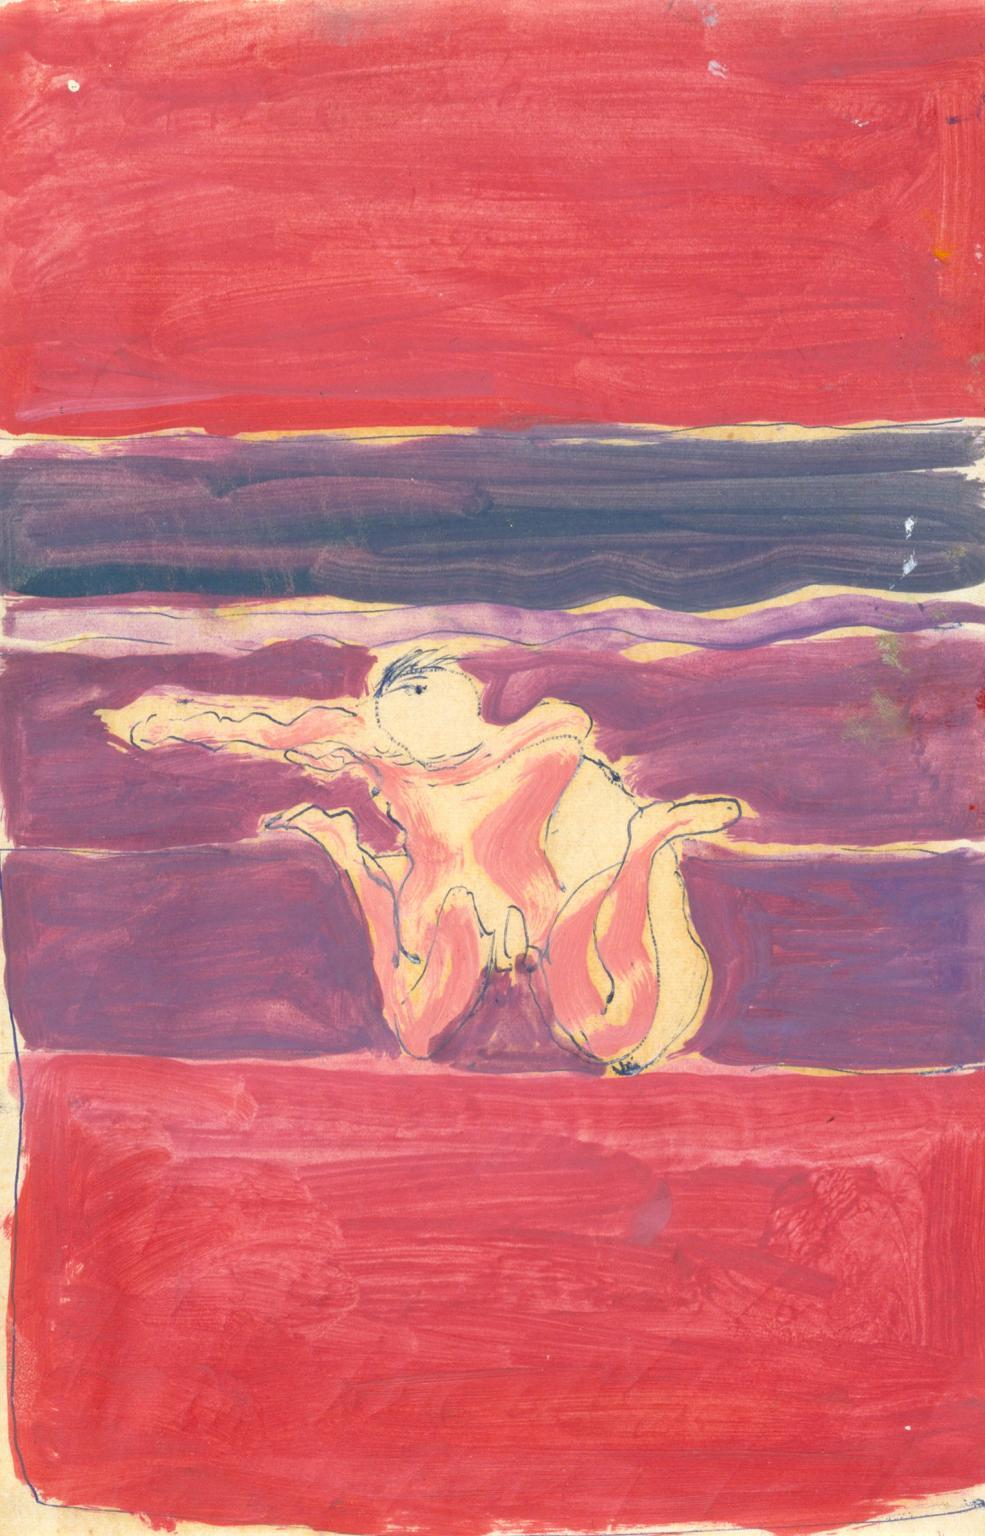 reclining figure, No.1 - francis bacon 1961.jpg